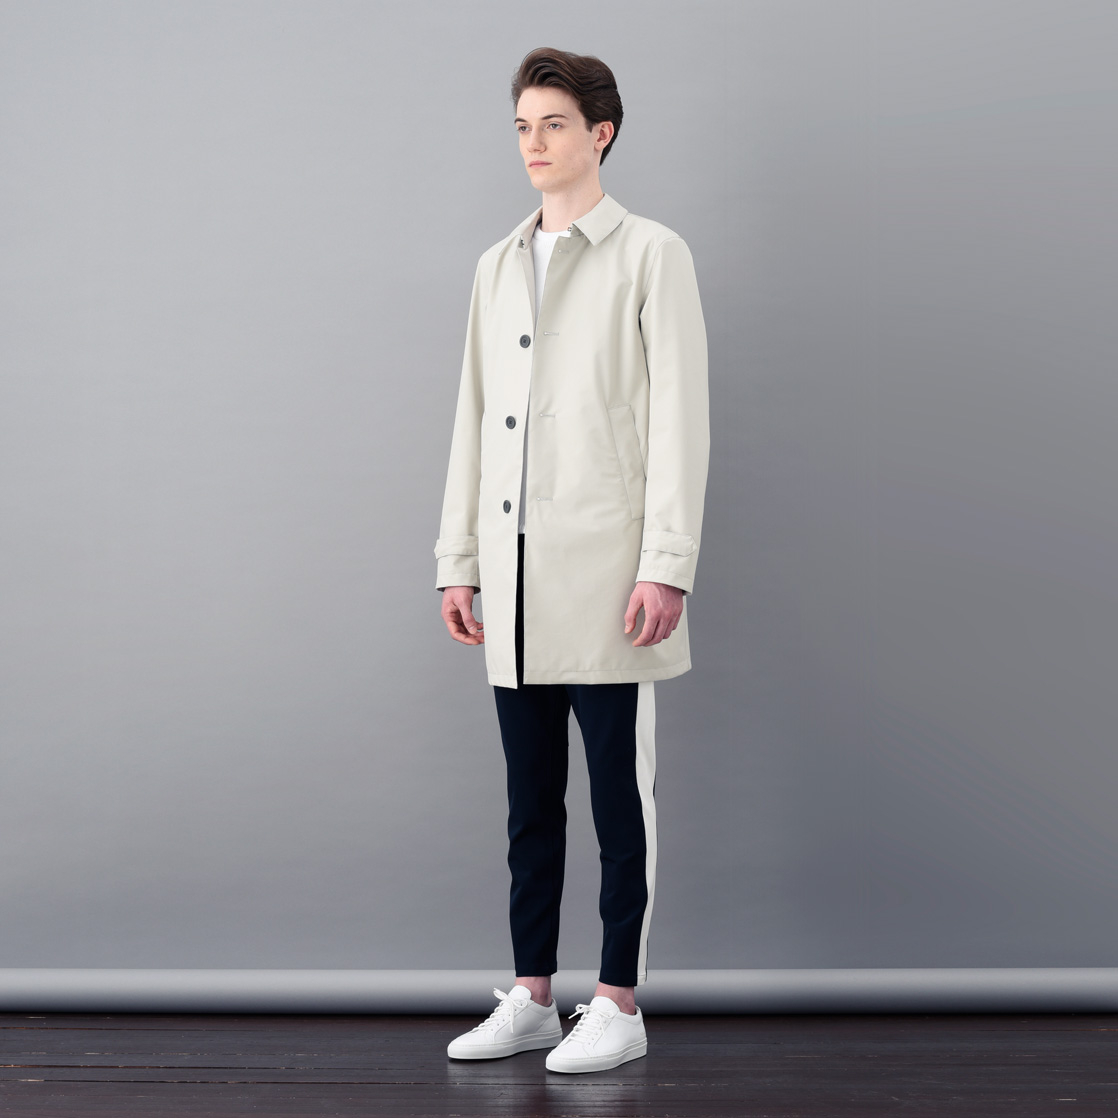 m_springstyle_outer_7.jpg